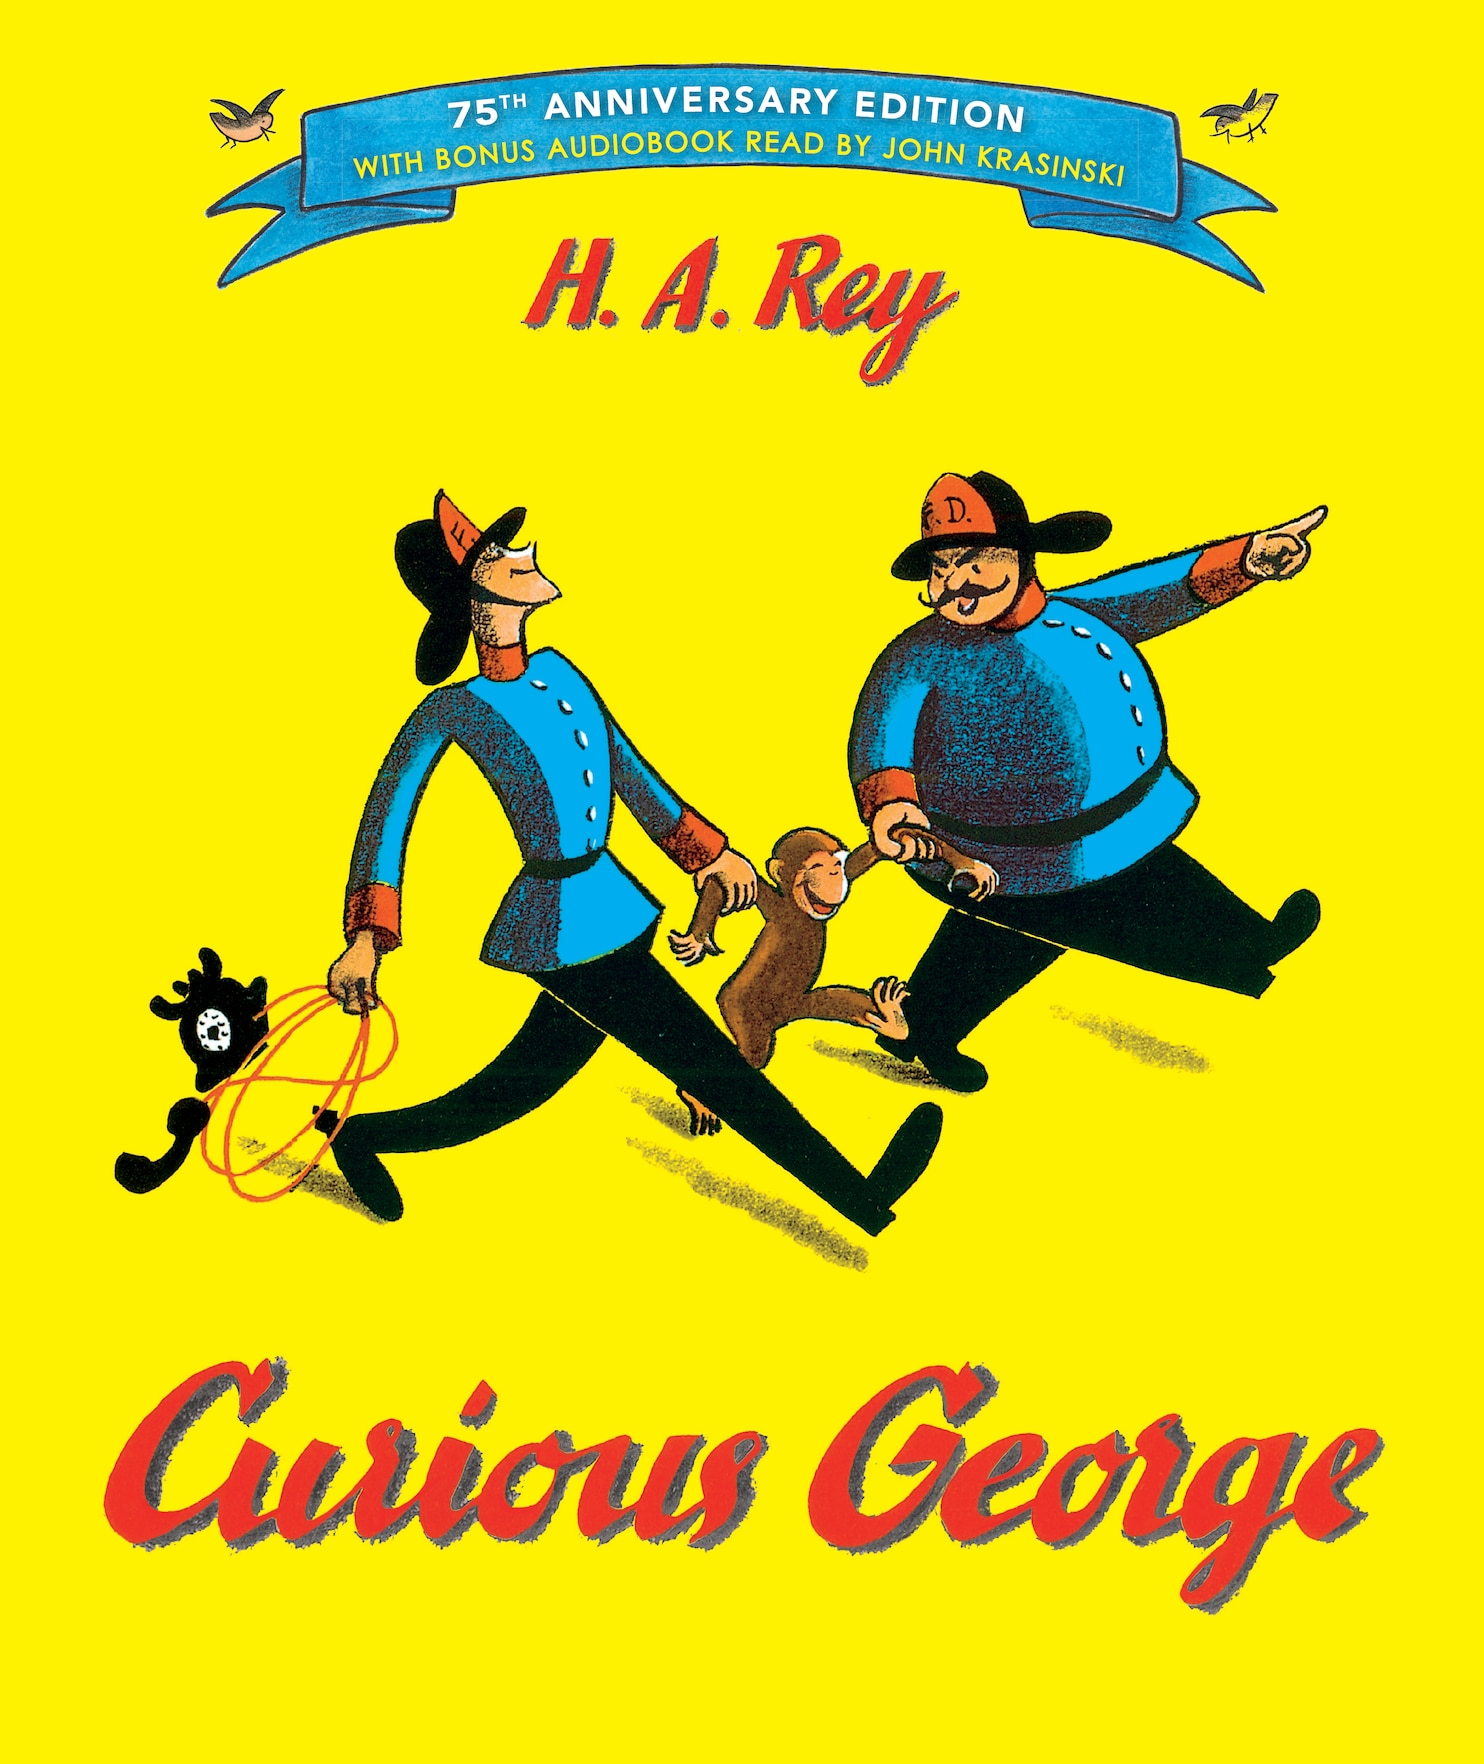 Curious George Turns 75 Why The Monkey And The Man In The